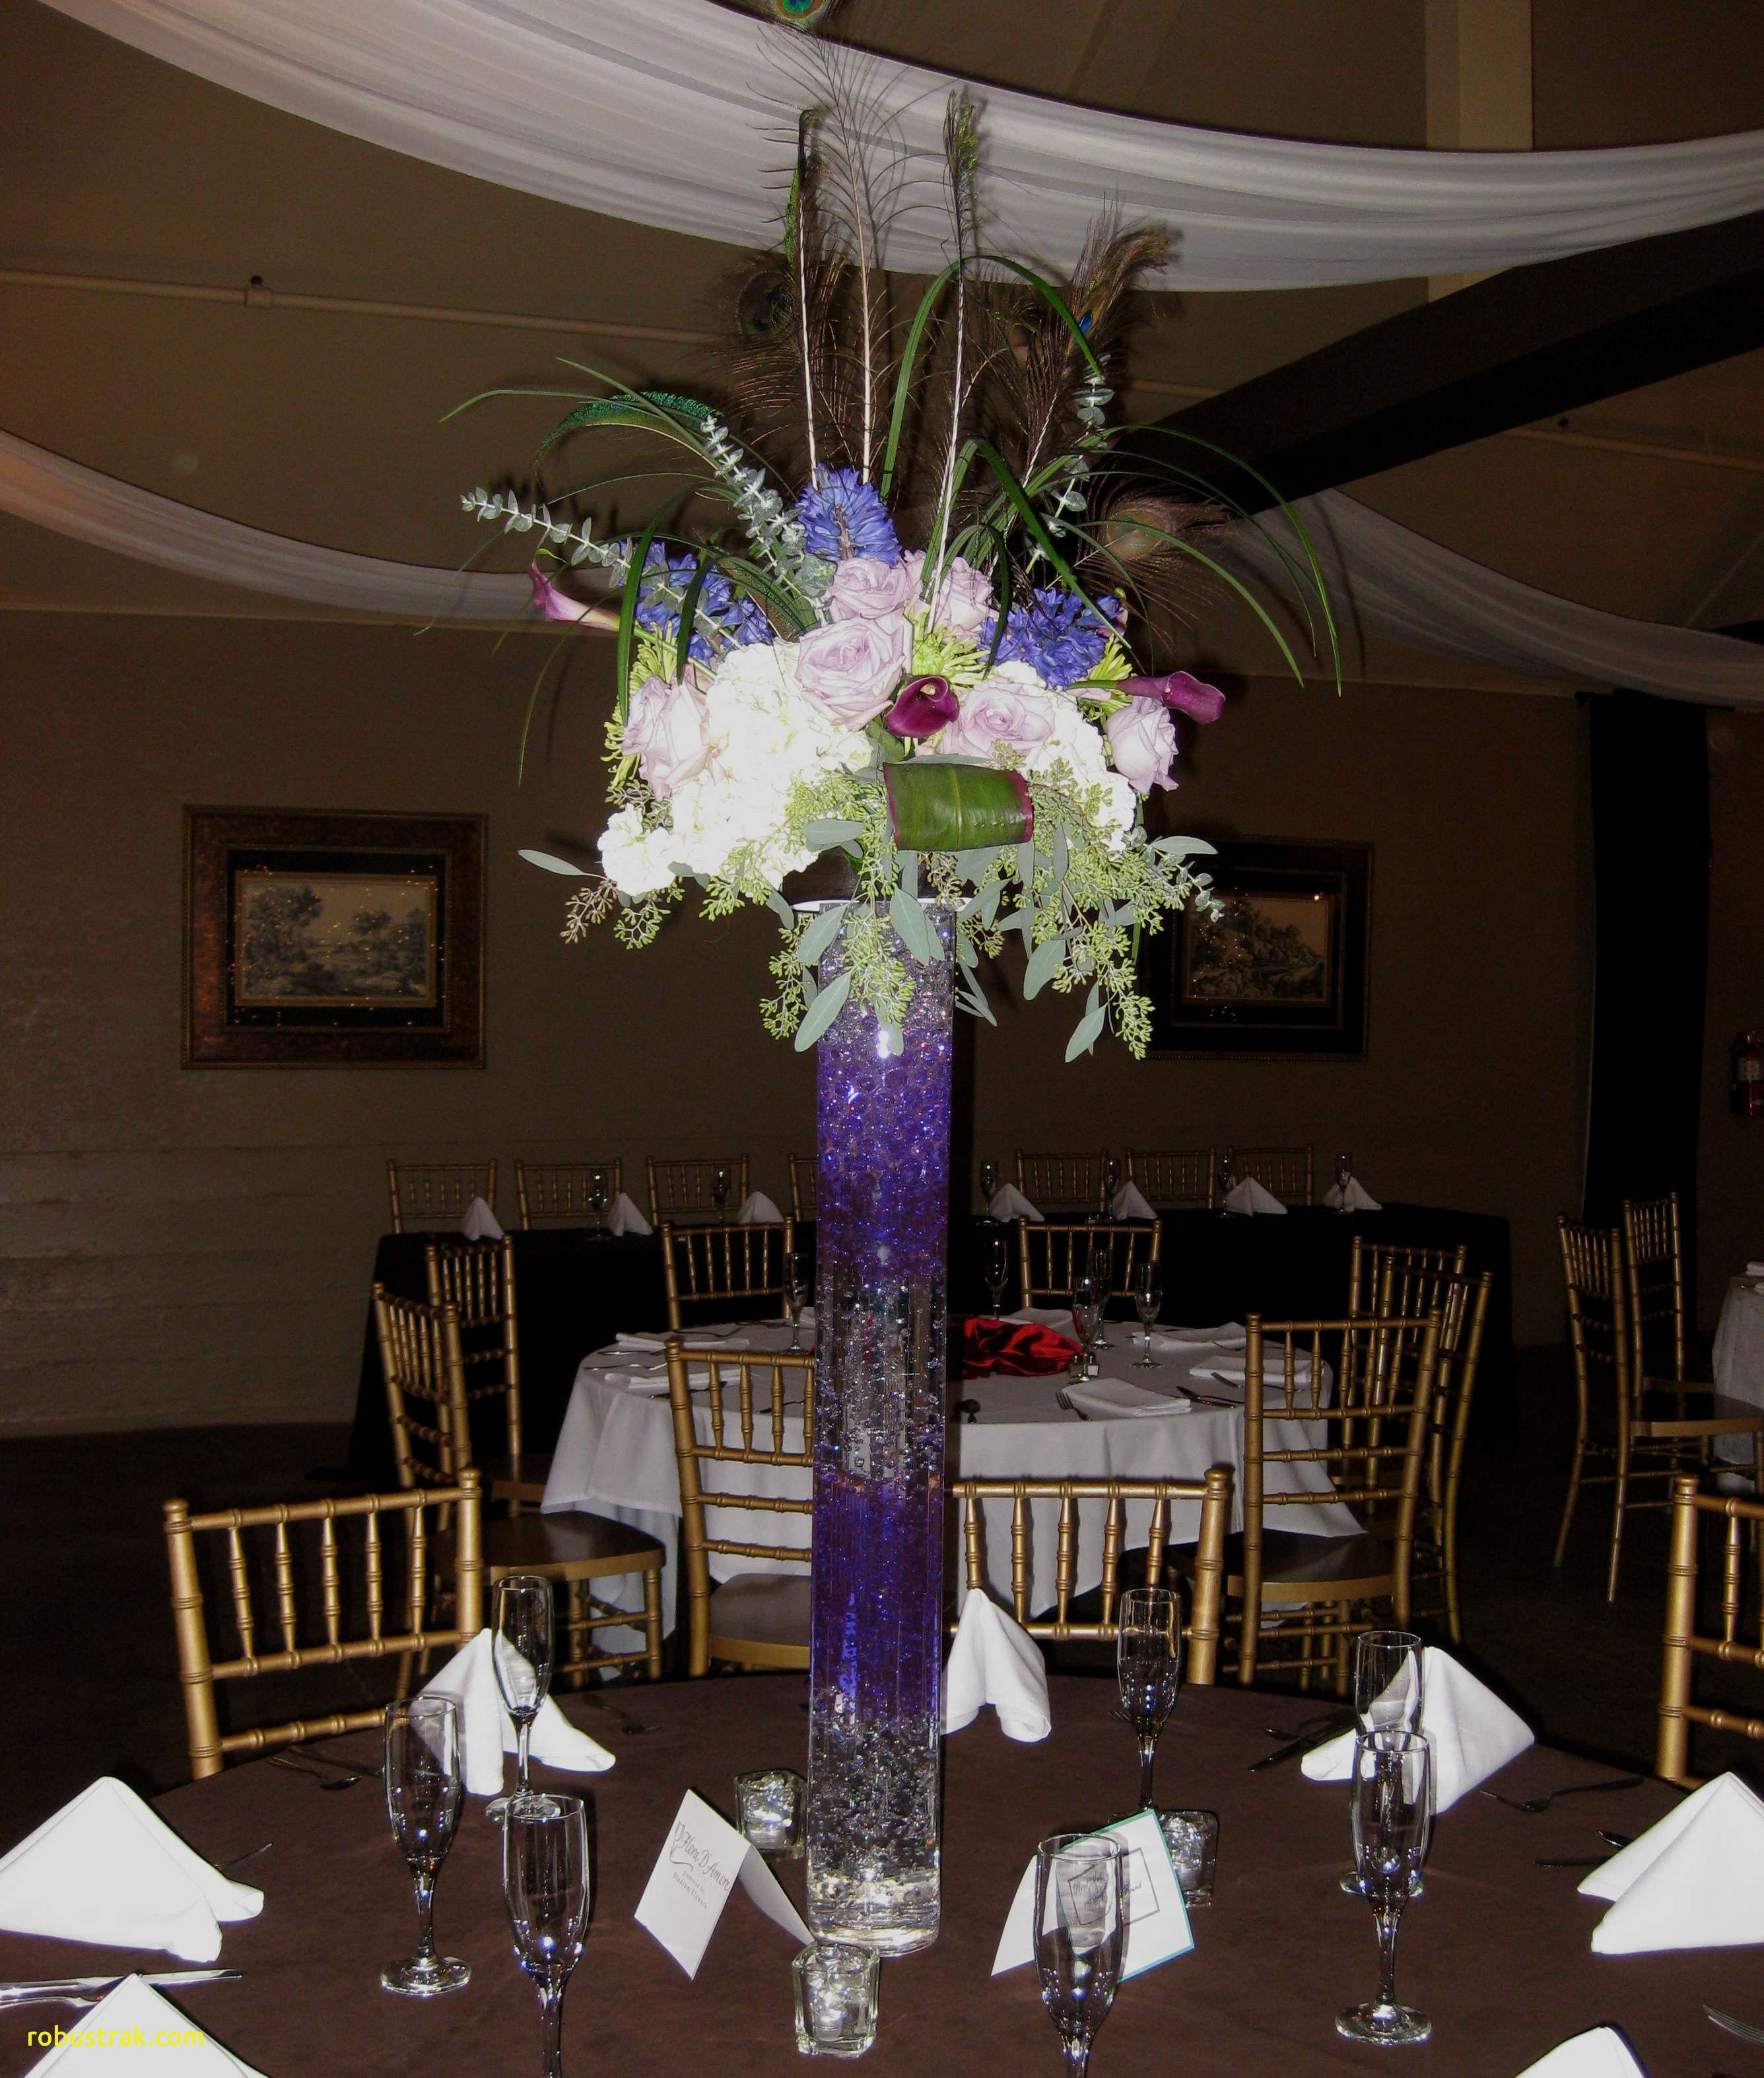 white hydrangea in glass vase of best of tall glass table decorations home design ideas for lighting marvelous glass flower vases centerpieces 24 small